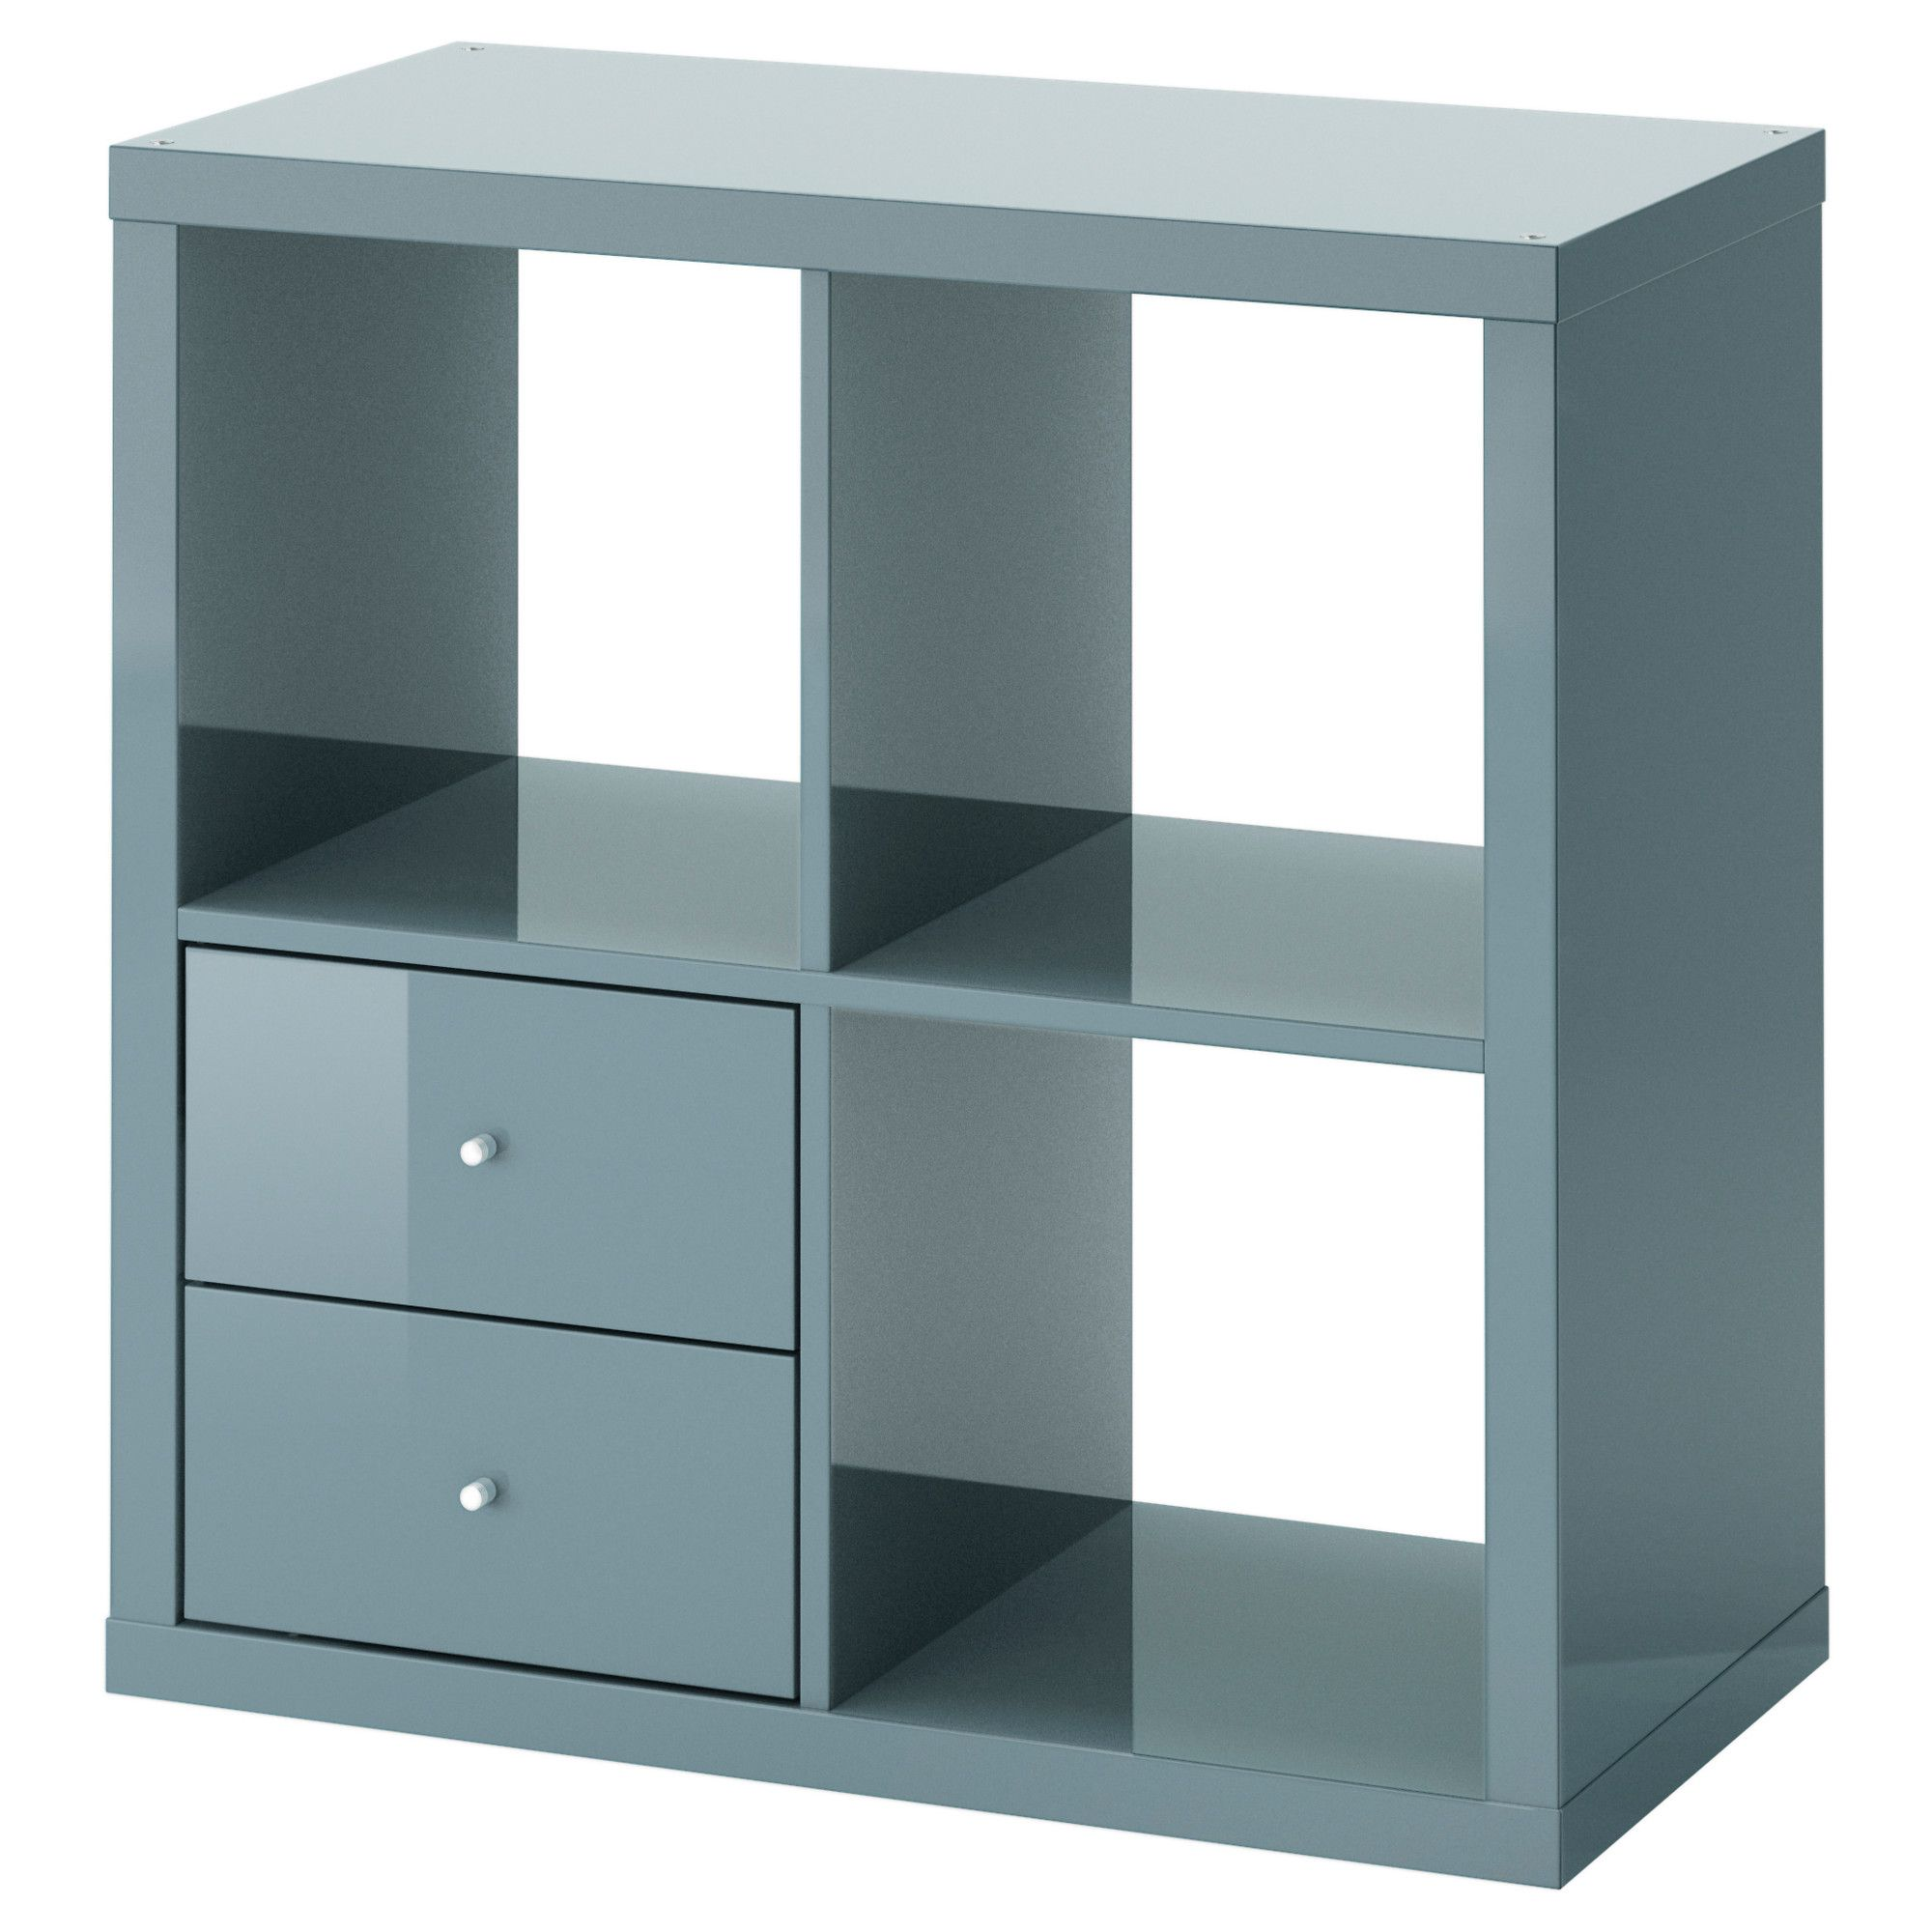 Ikea Shelves Perth Ikea Kallax Shelving Unit With Drawers High Gloss Grey Turquoise